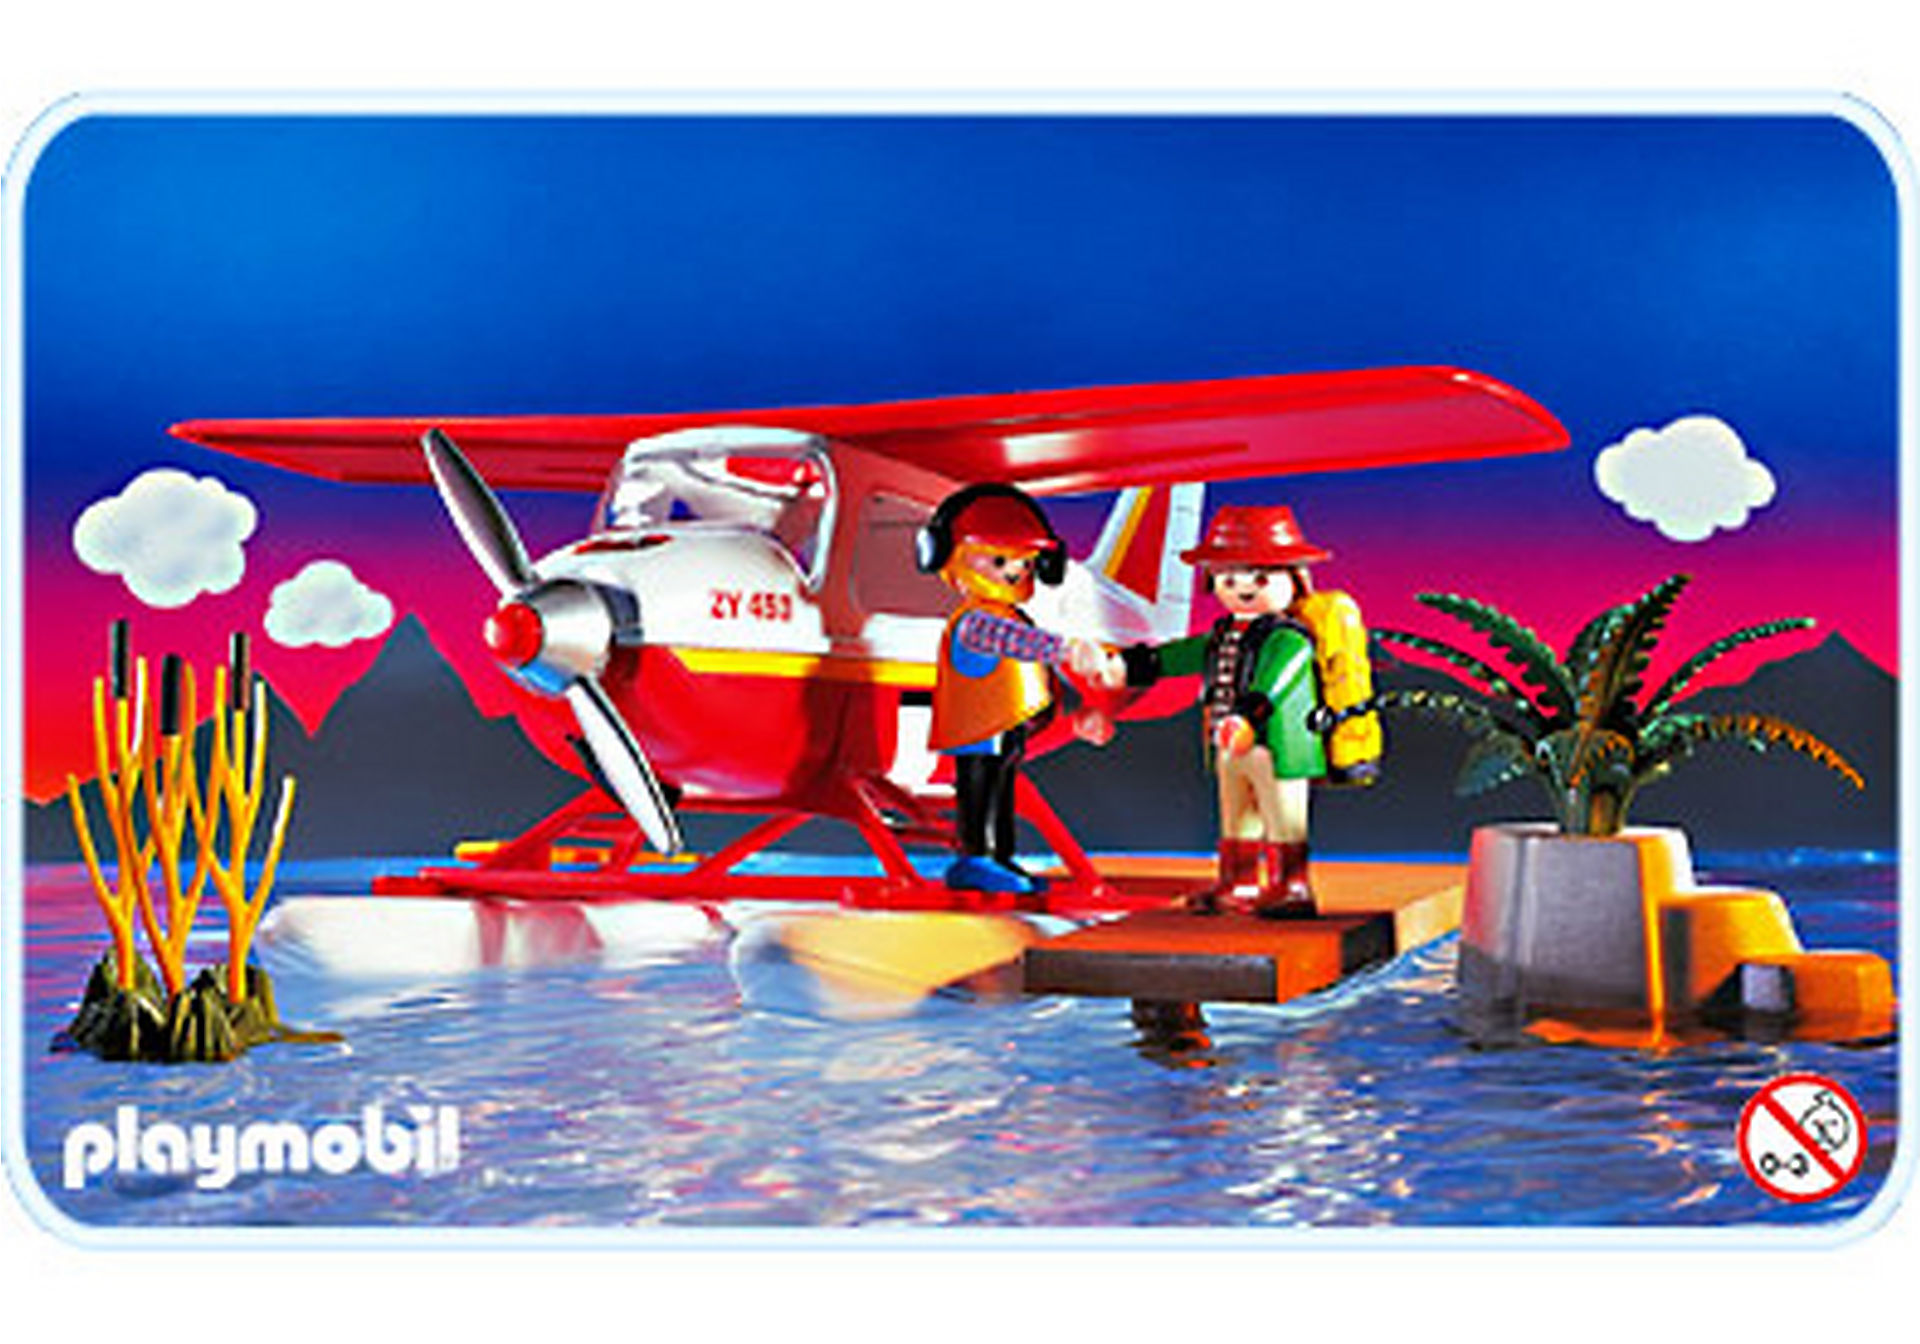 http://media.playmobil.com/i/playmobil/3866-A_product_detail/Pilote / aventurier / hydravion